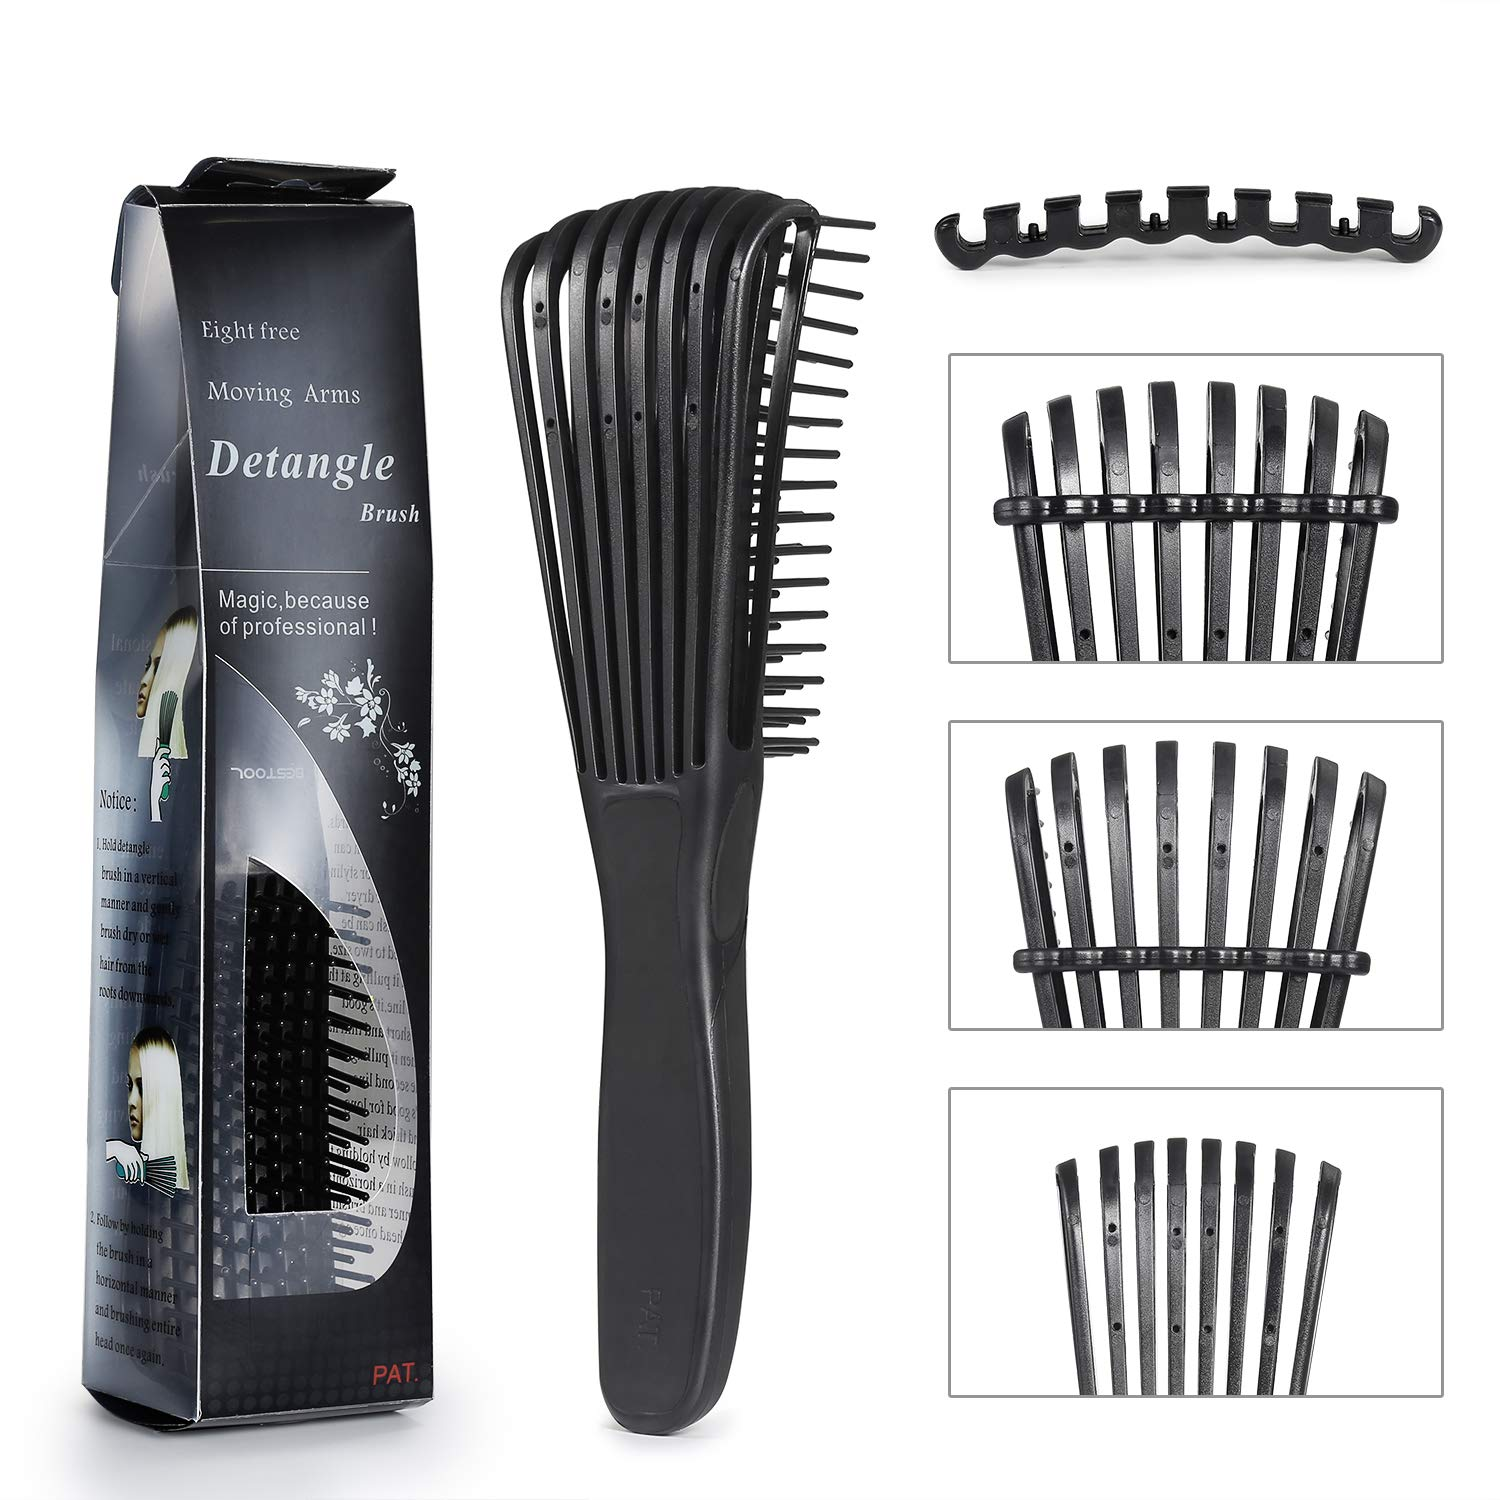 Easy DETANGLING BRUSH FOR KINKY, COILY AND CURLY HAIR